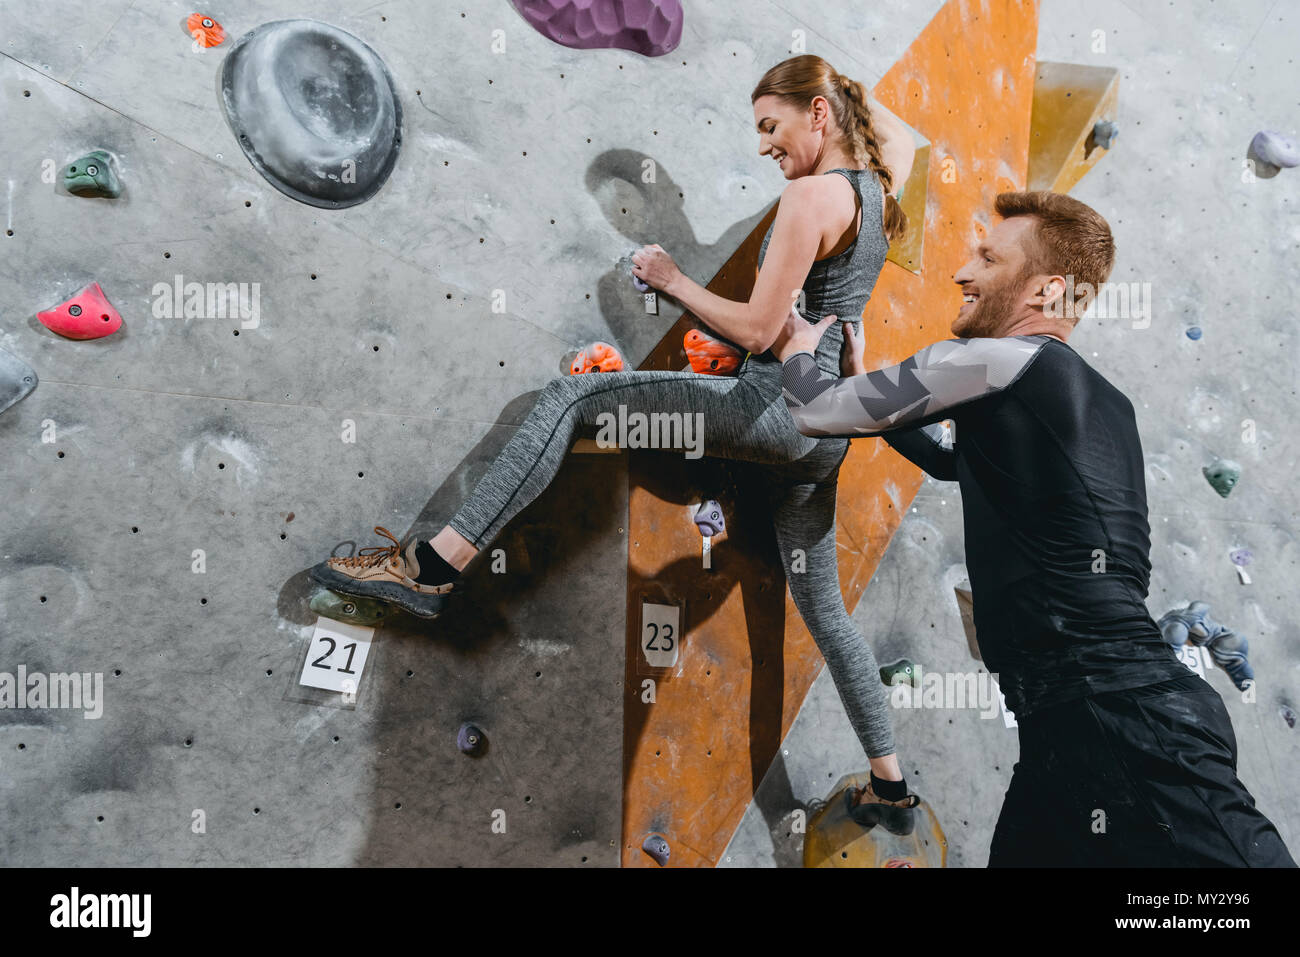 Young woman climbing a wall with grips with man supporting her from behind - Stock Image